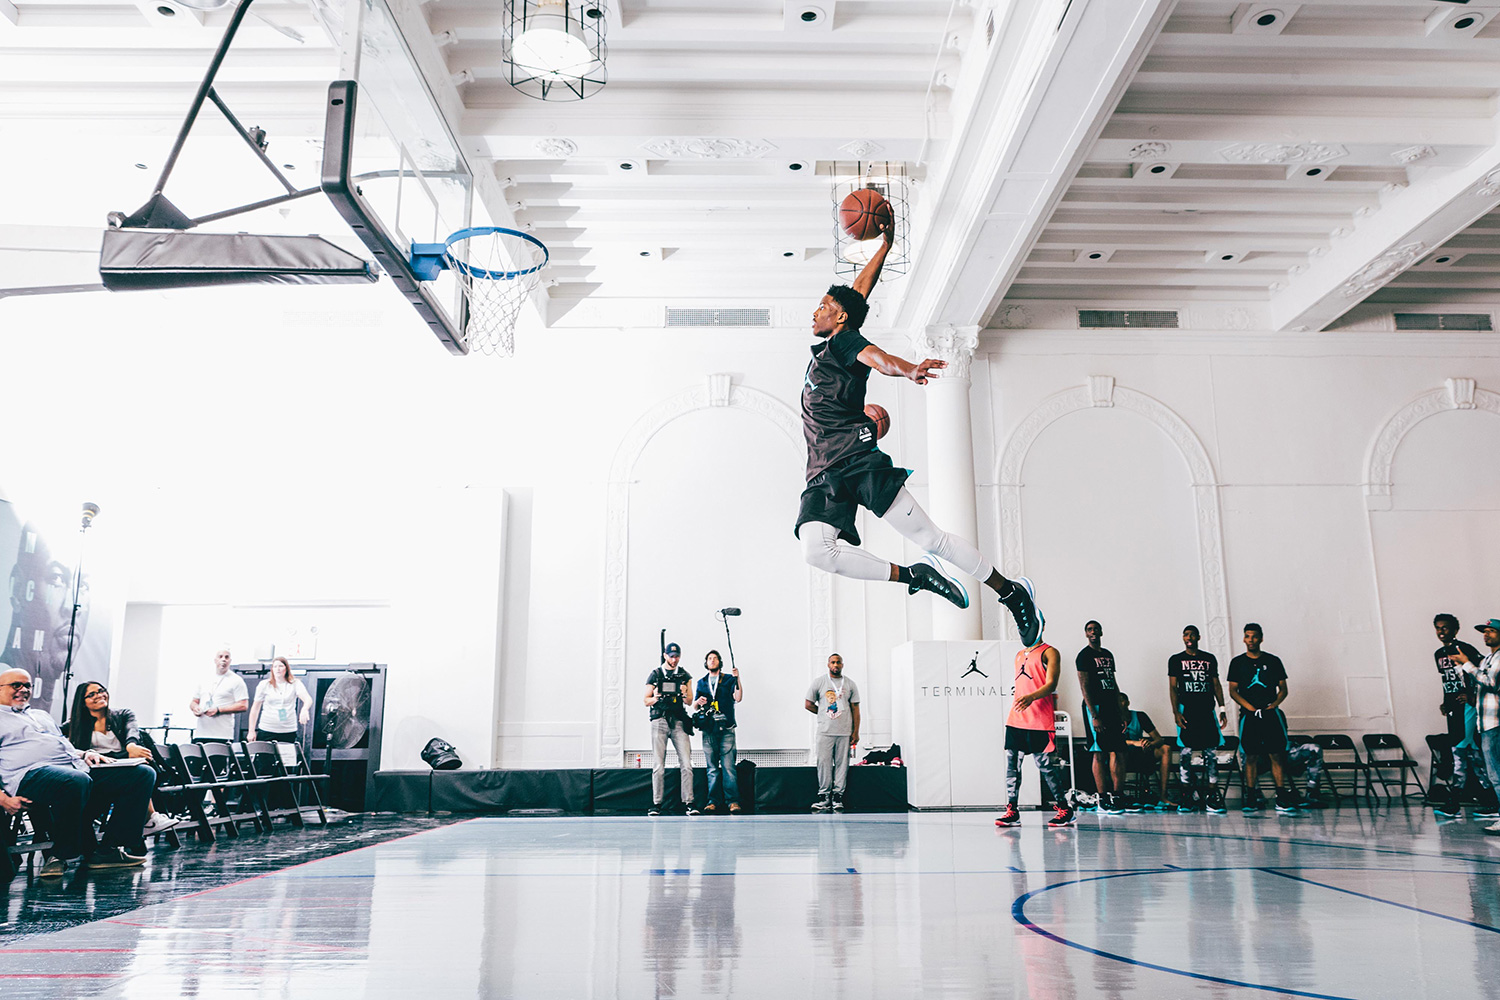 The West team practice seemed to grow in intensity by the minute, with LSU-bound Blakeney catching fire and throwing down several impressive dunks. Here Malik Beasley rises for the slam.